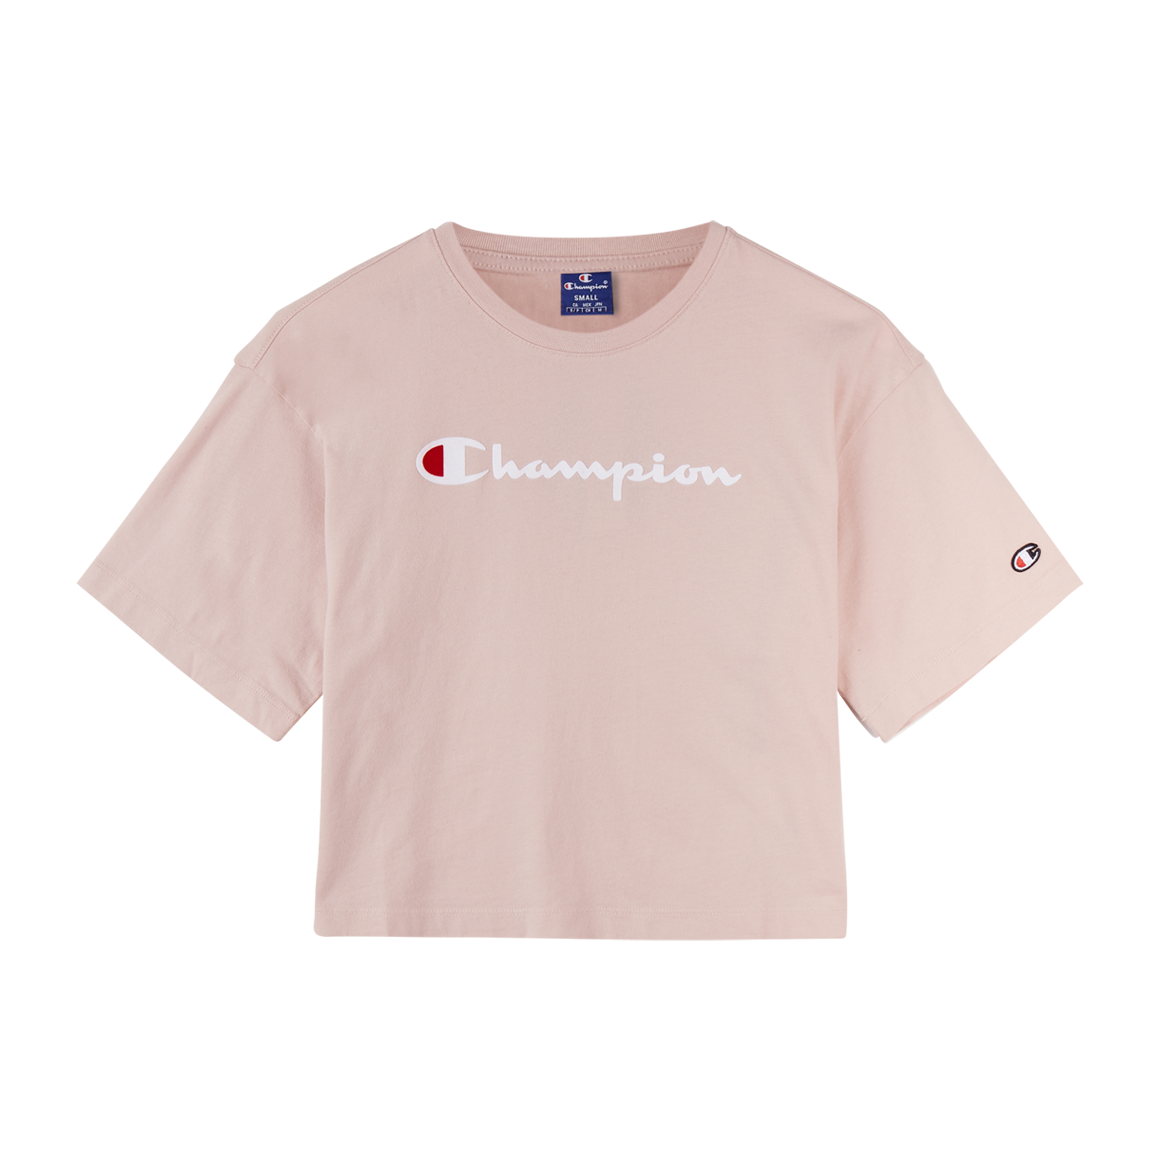 Champion cropped logo t shirt pige